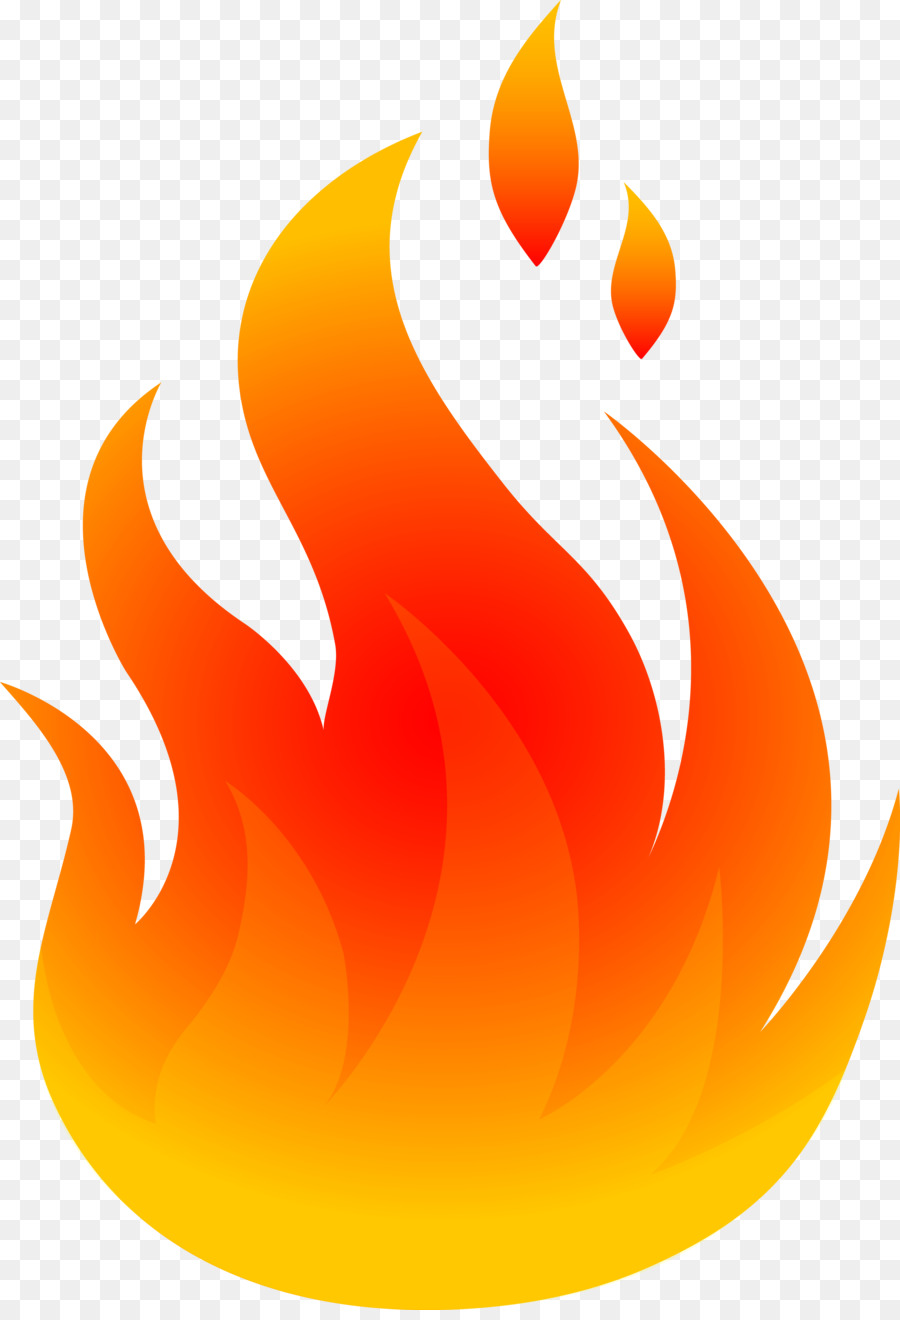 Flame clipart. Fire clip art realistic